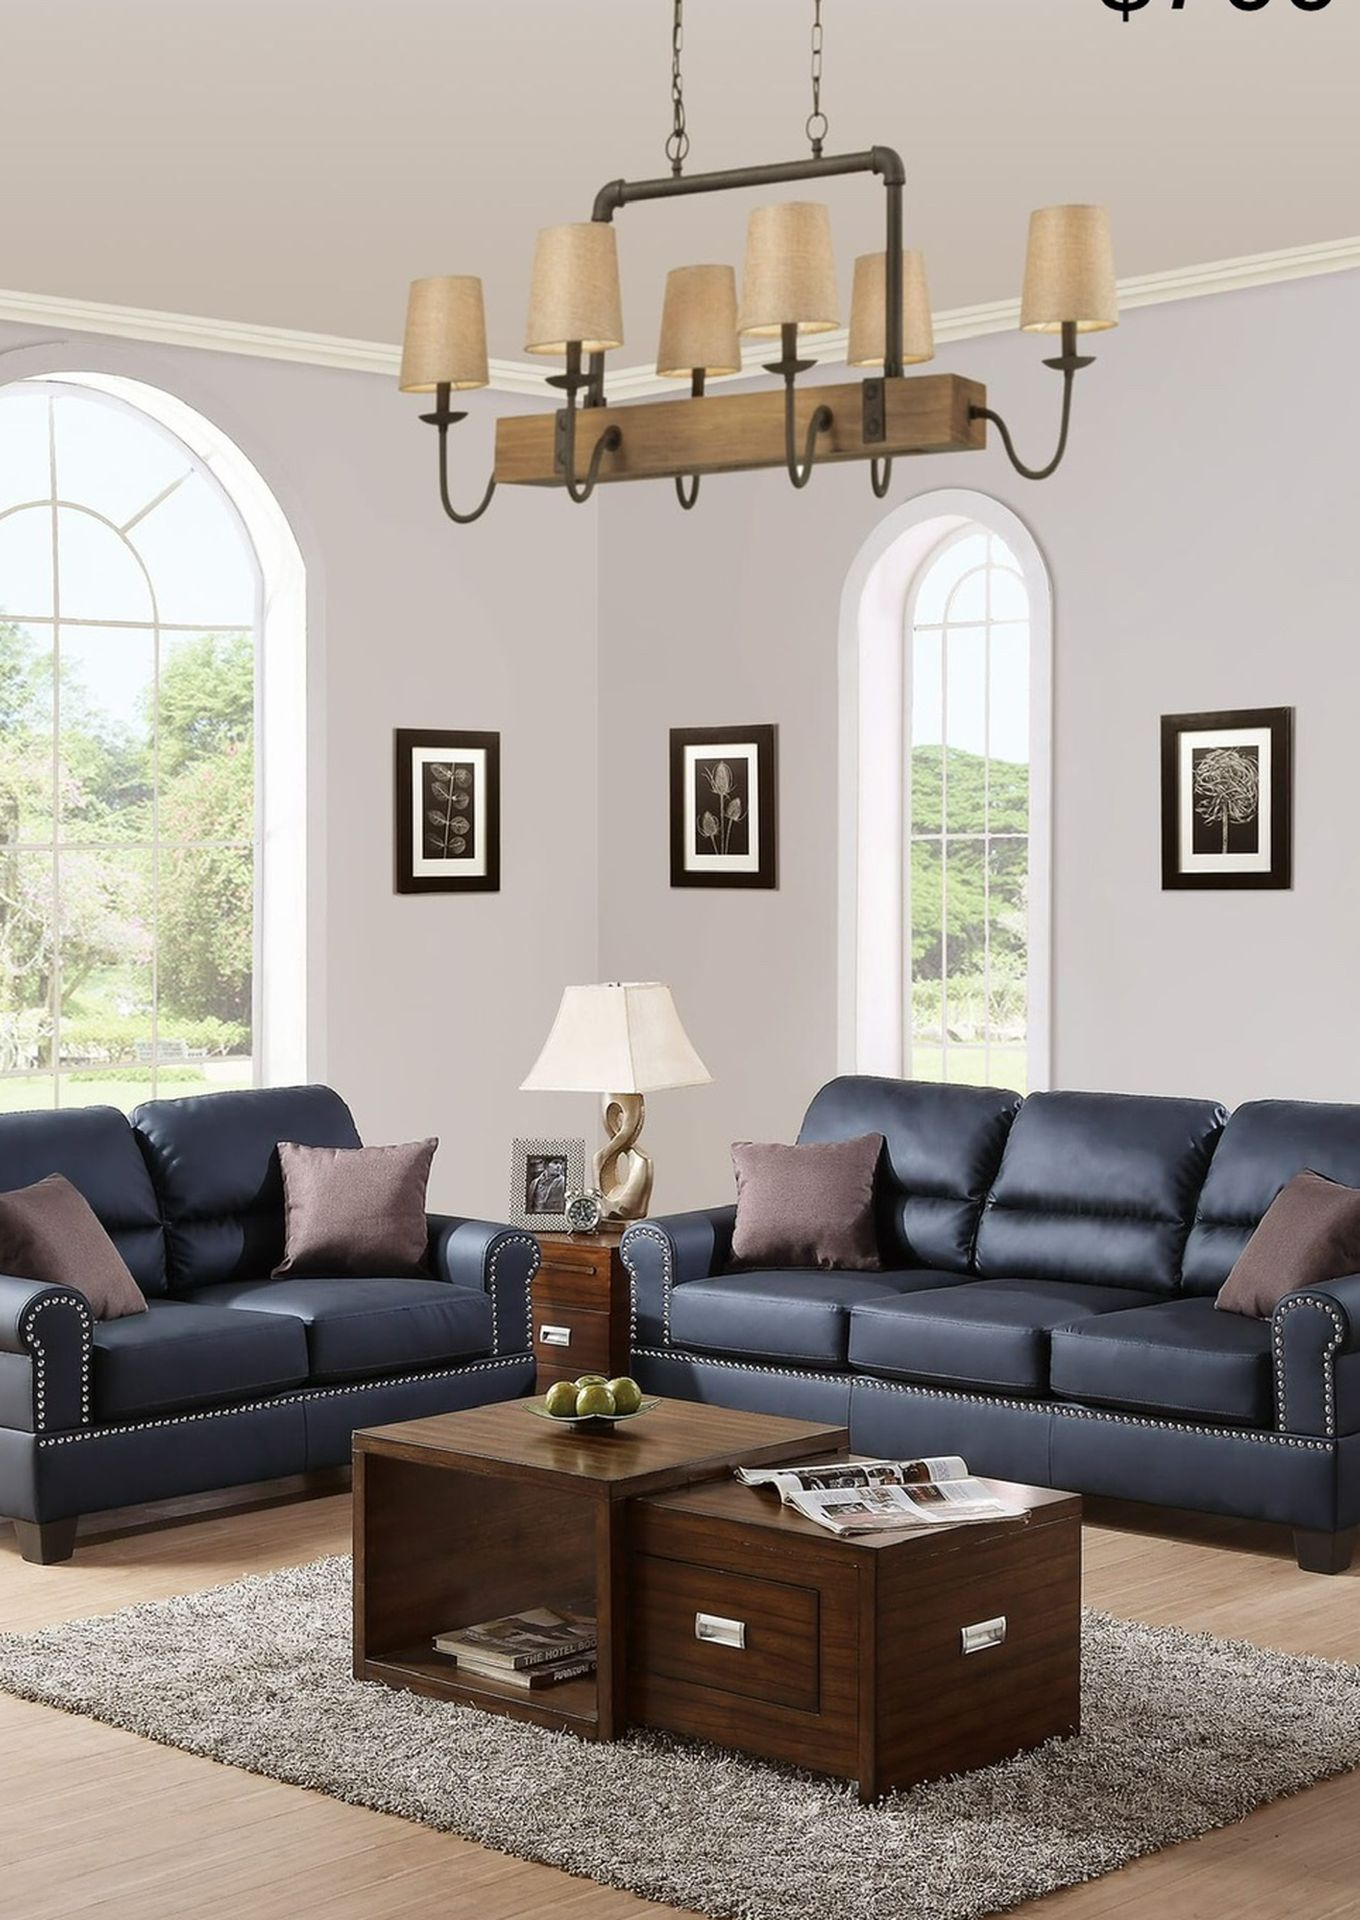 New Leather Couch And Love Seat Set / Free Delivery